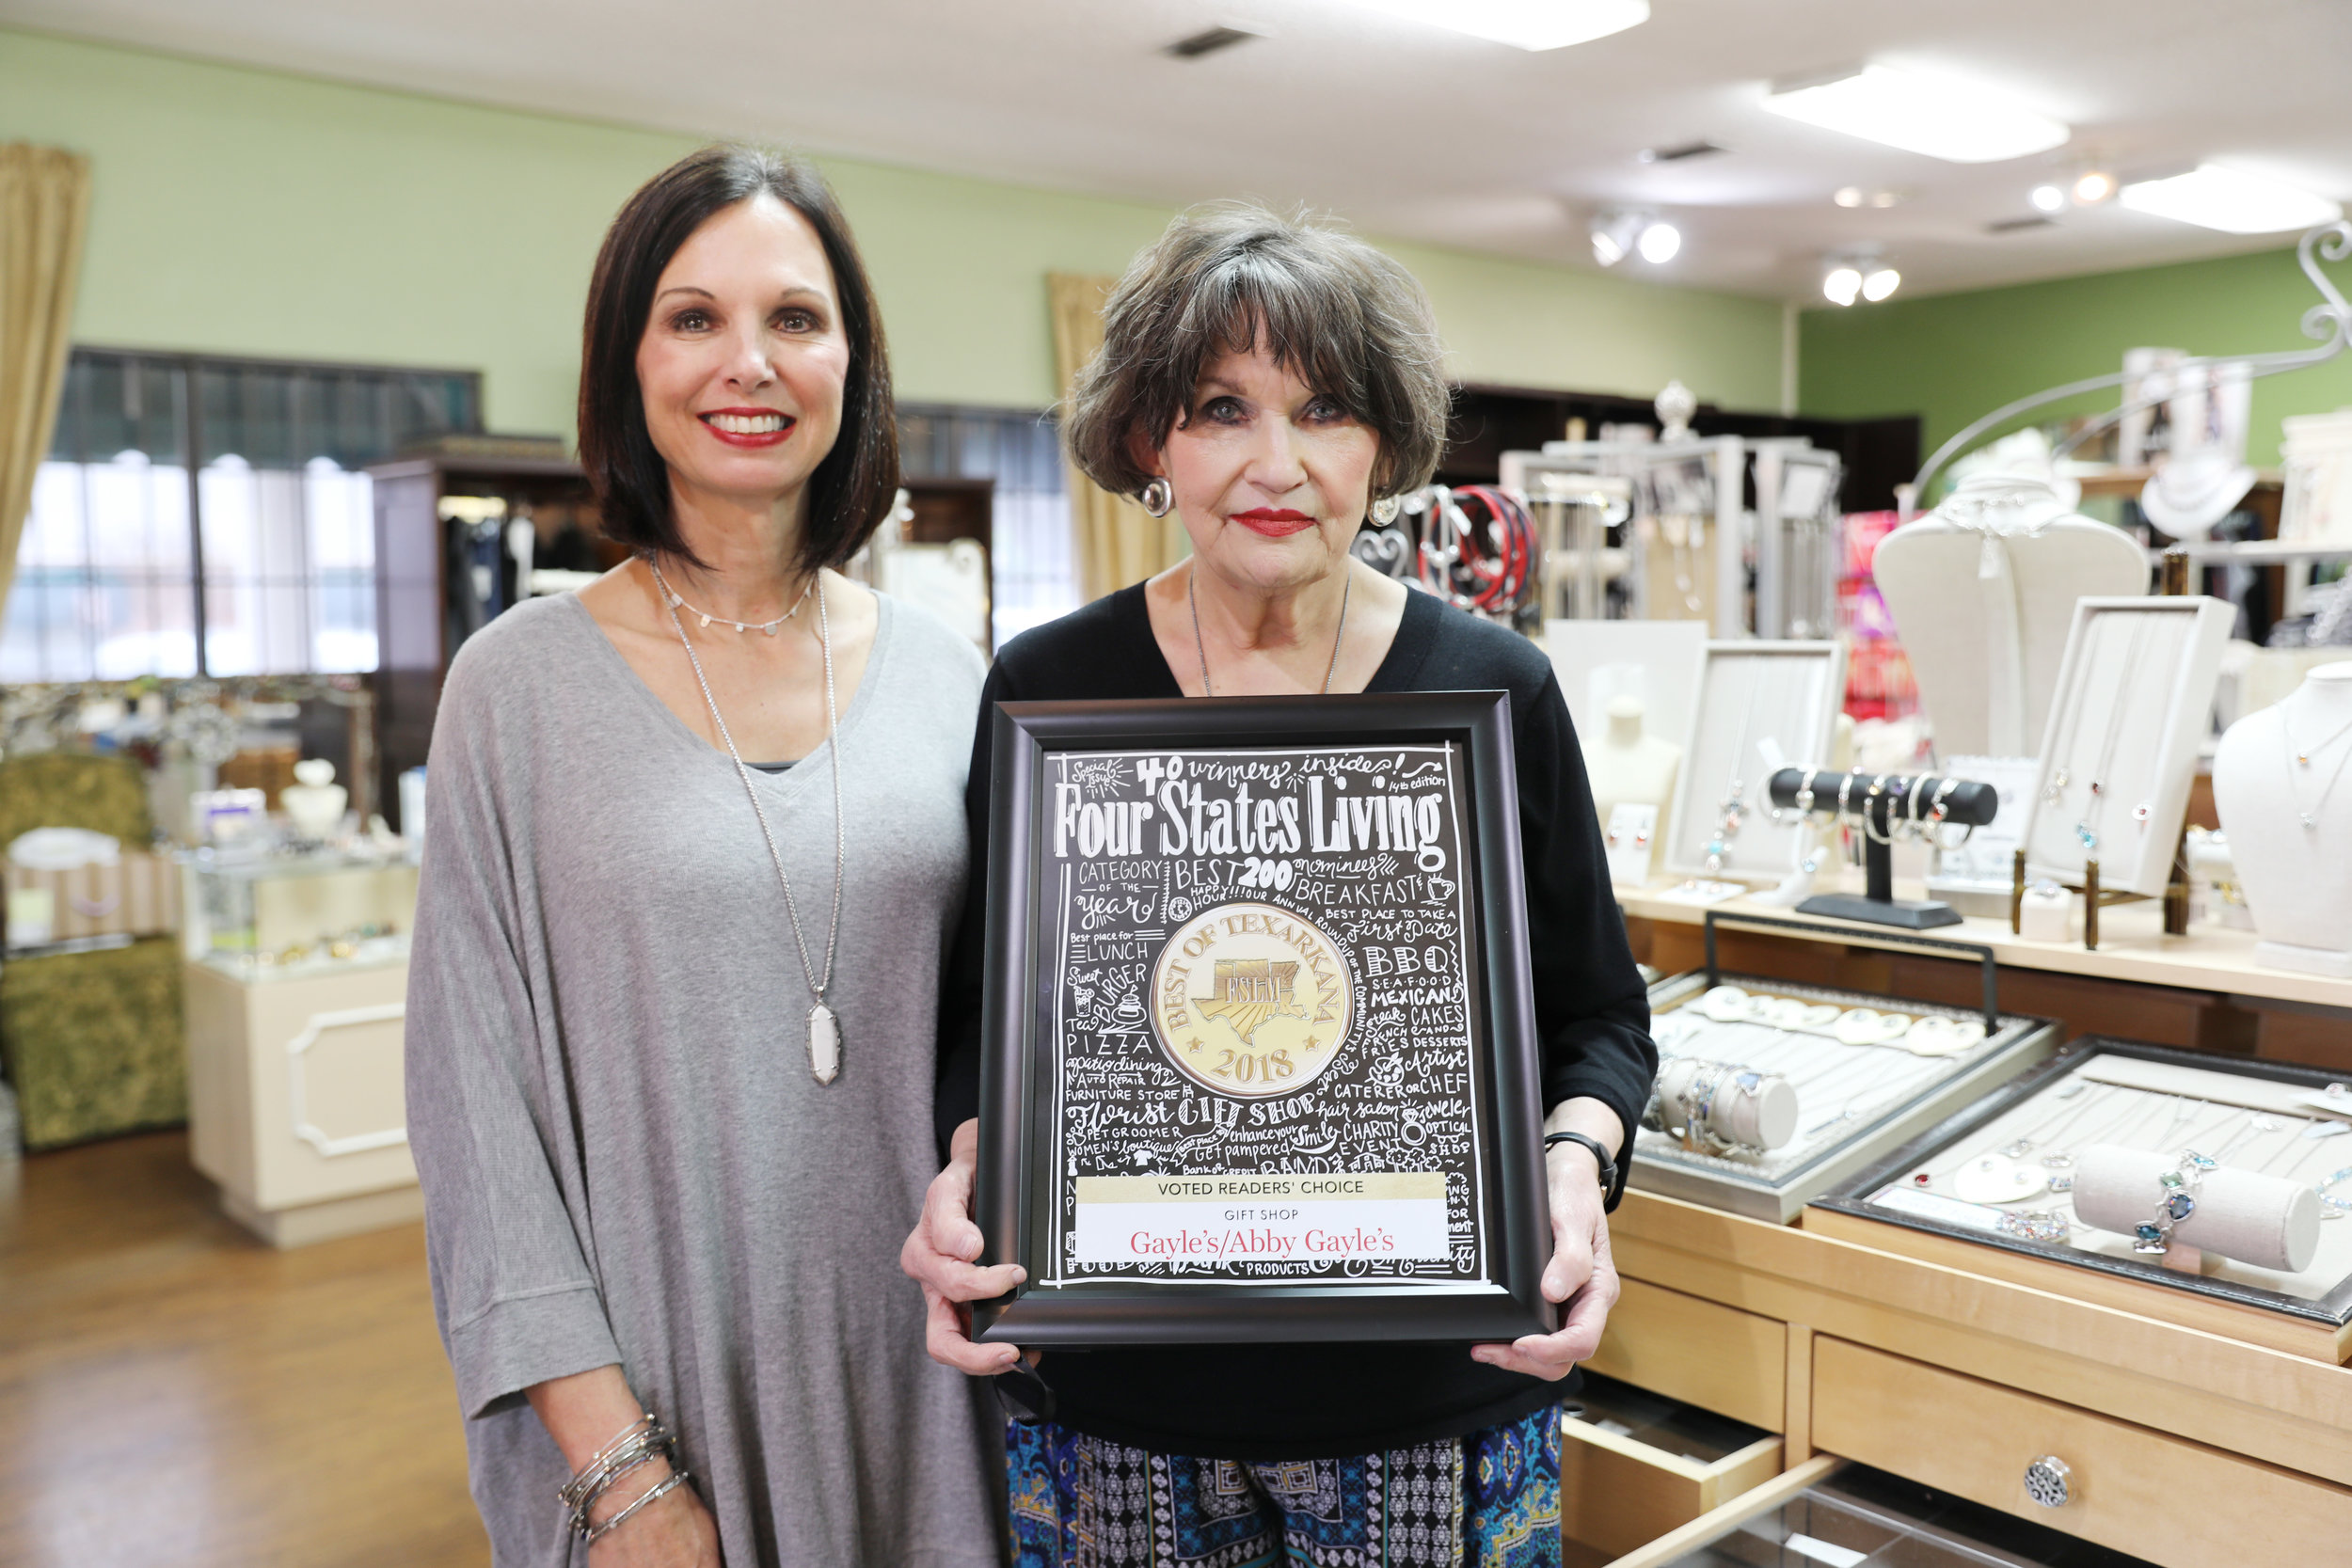 GAYLE'S/ABBY GAYLE'S – Melinda Vammen and Gayle Hines